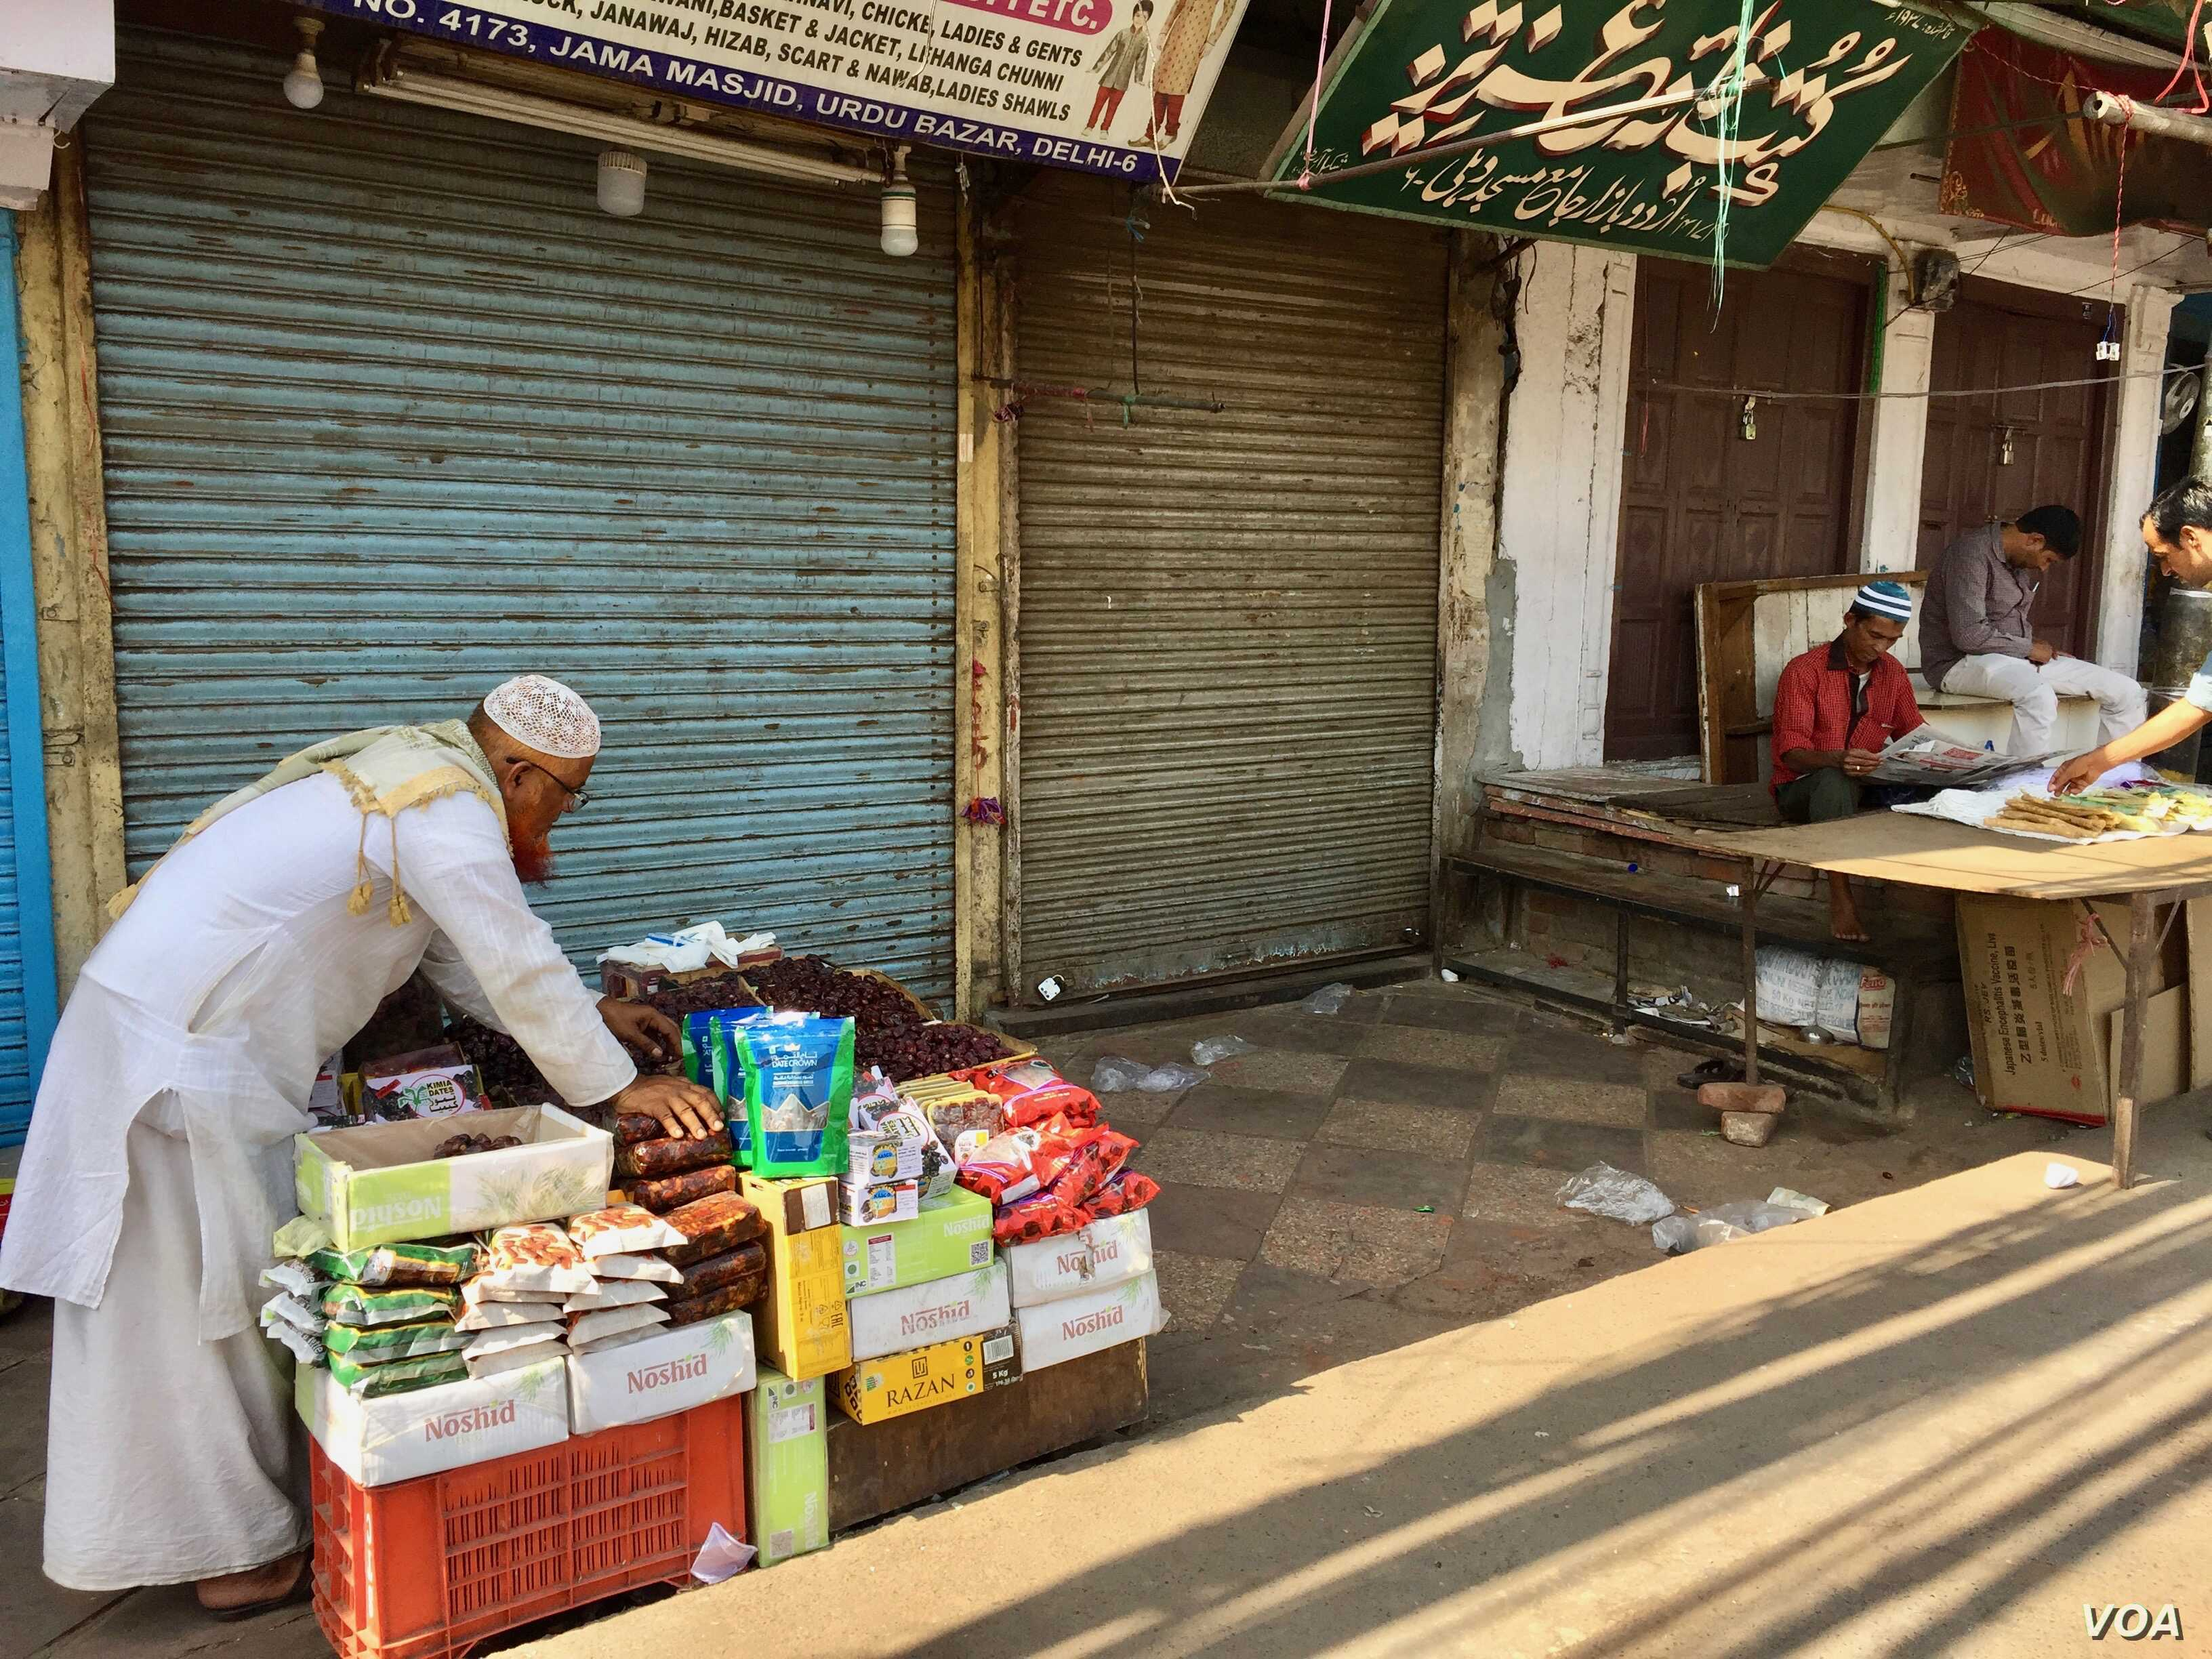 Some arrive early morning to set up roadside stalls hoping to catch customers as they emerge after prayers at the mosque.